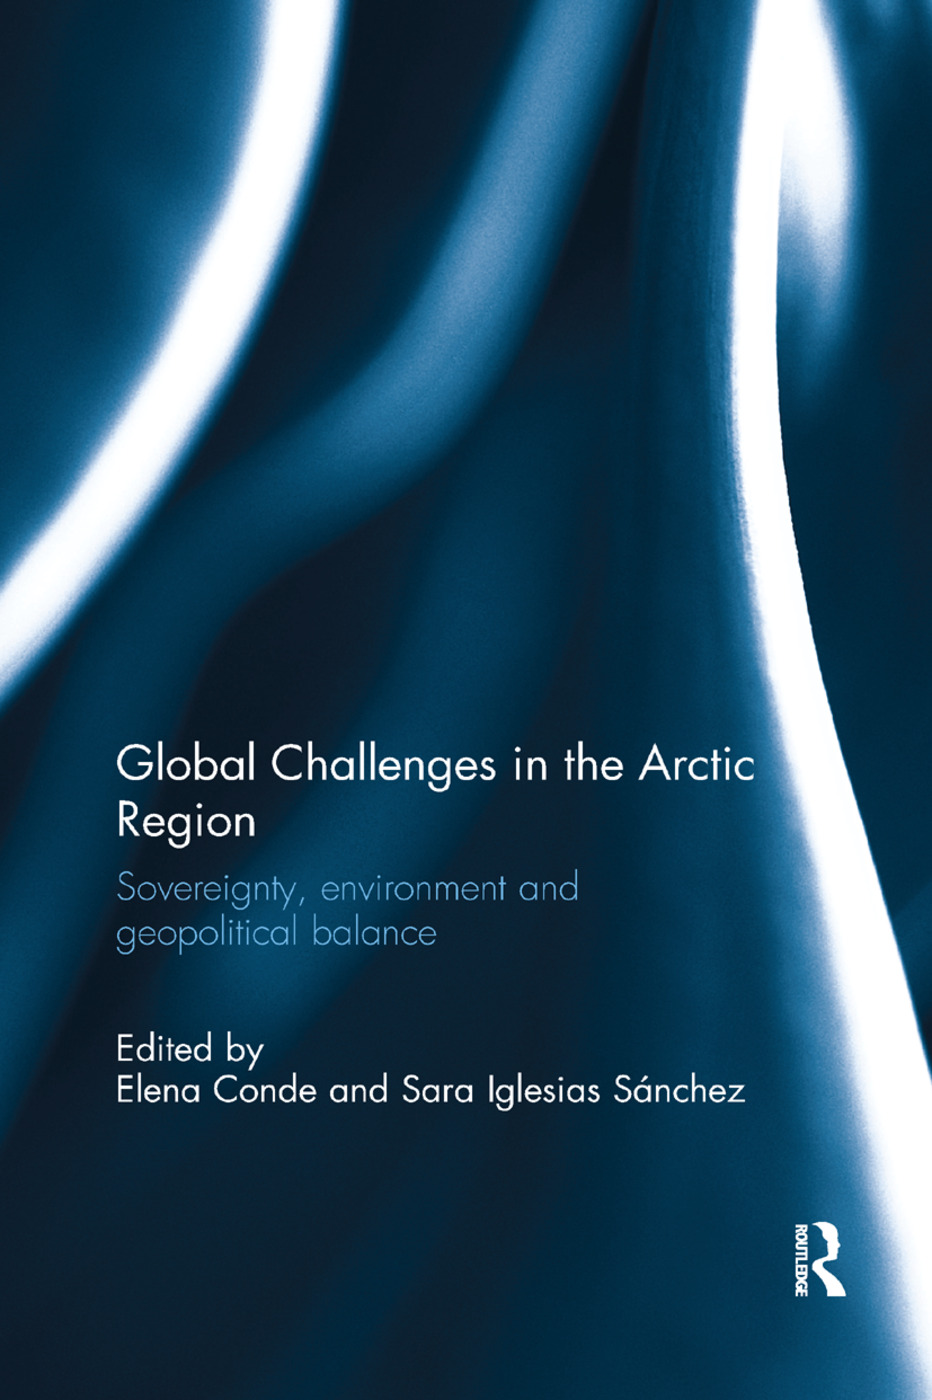 Global Challenges in the Arctic Region